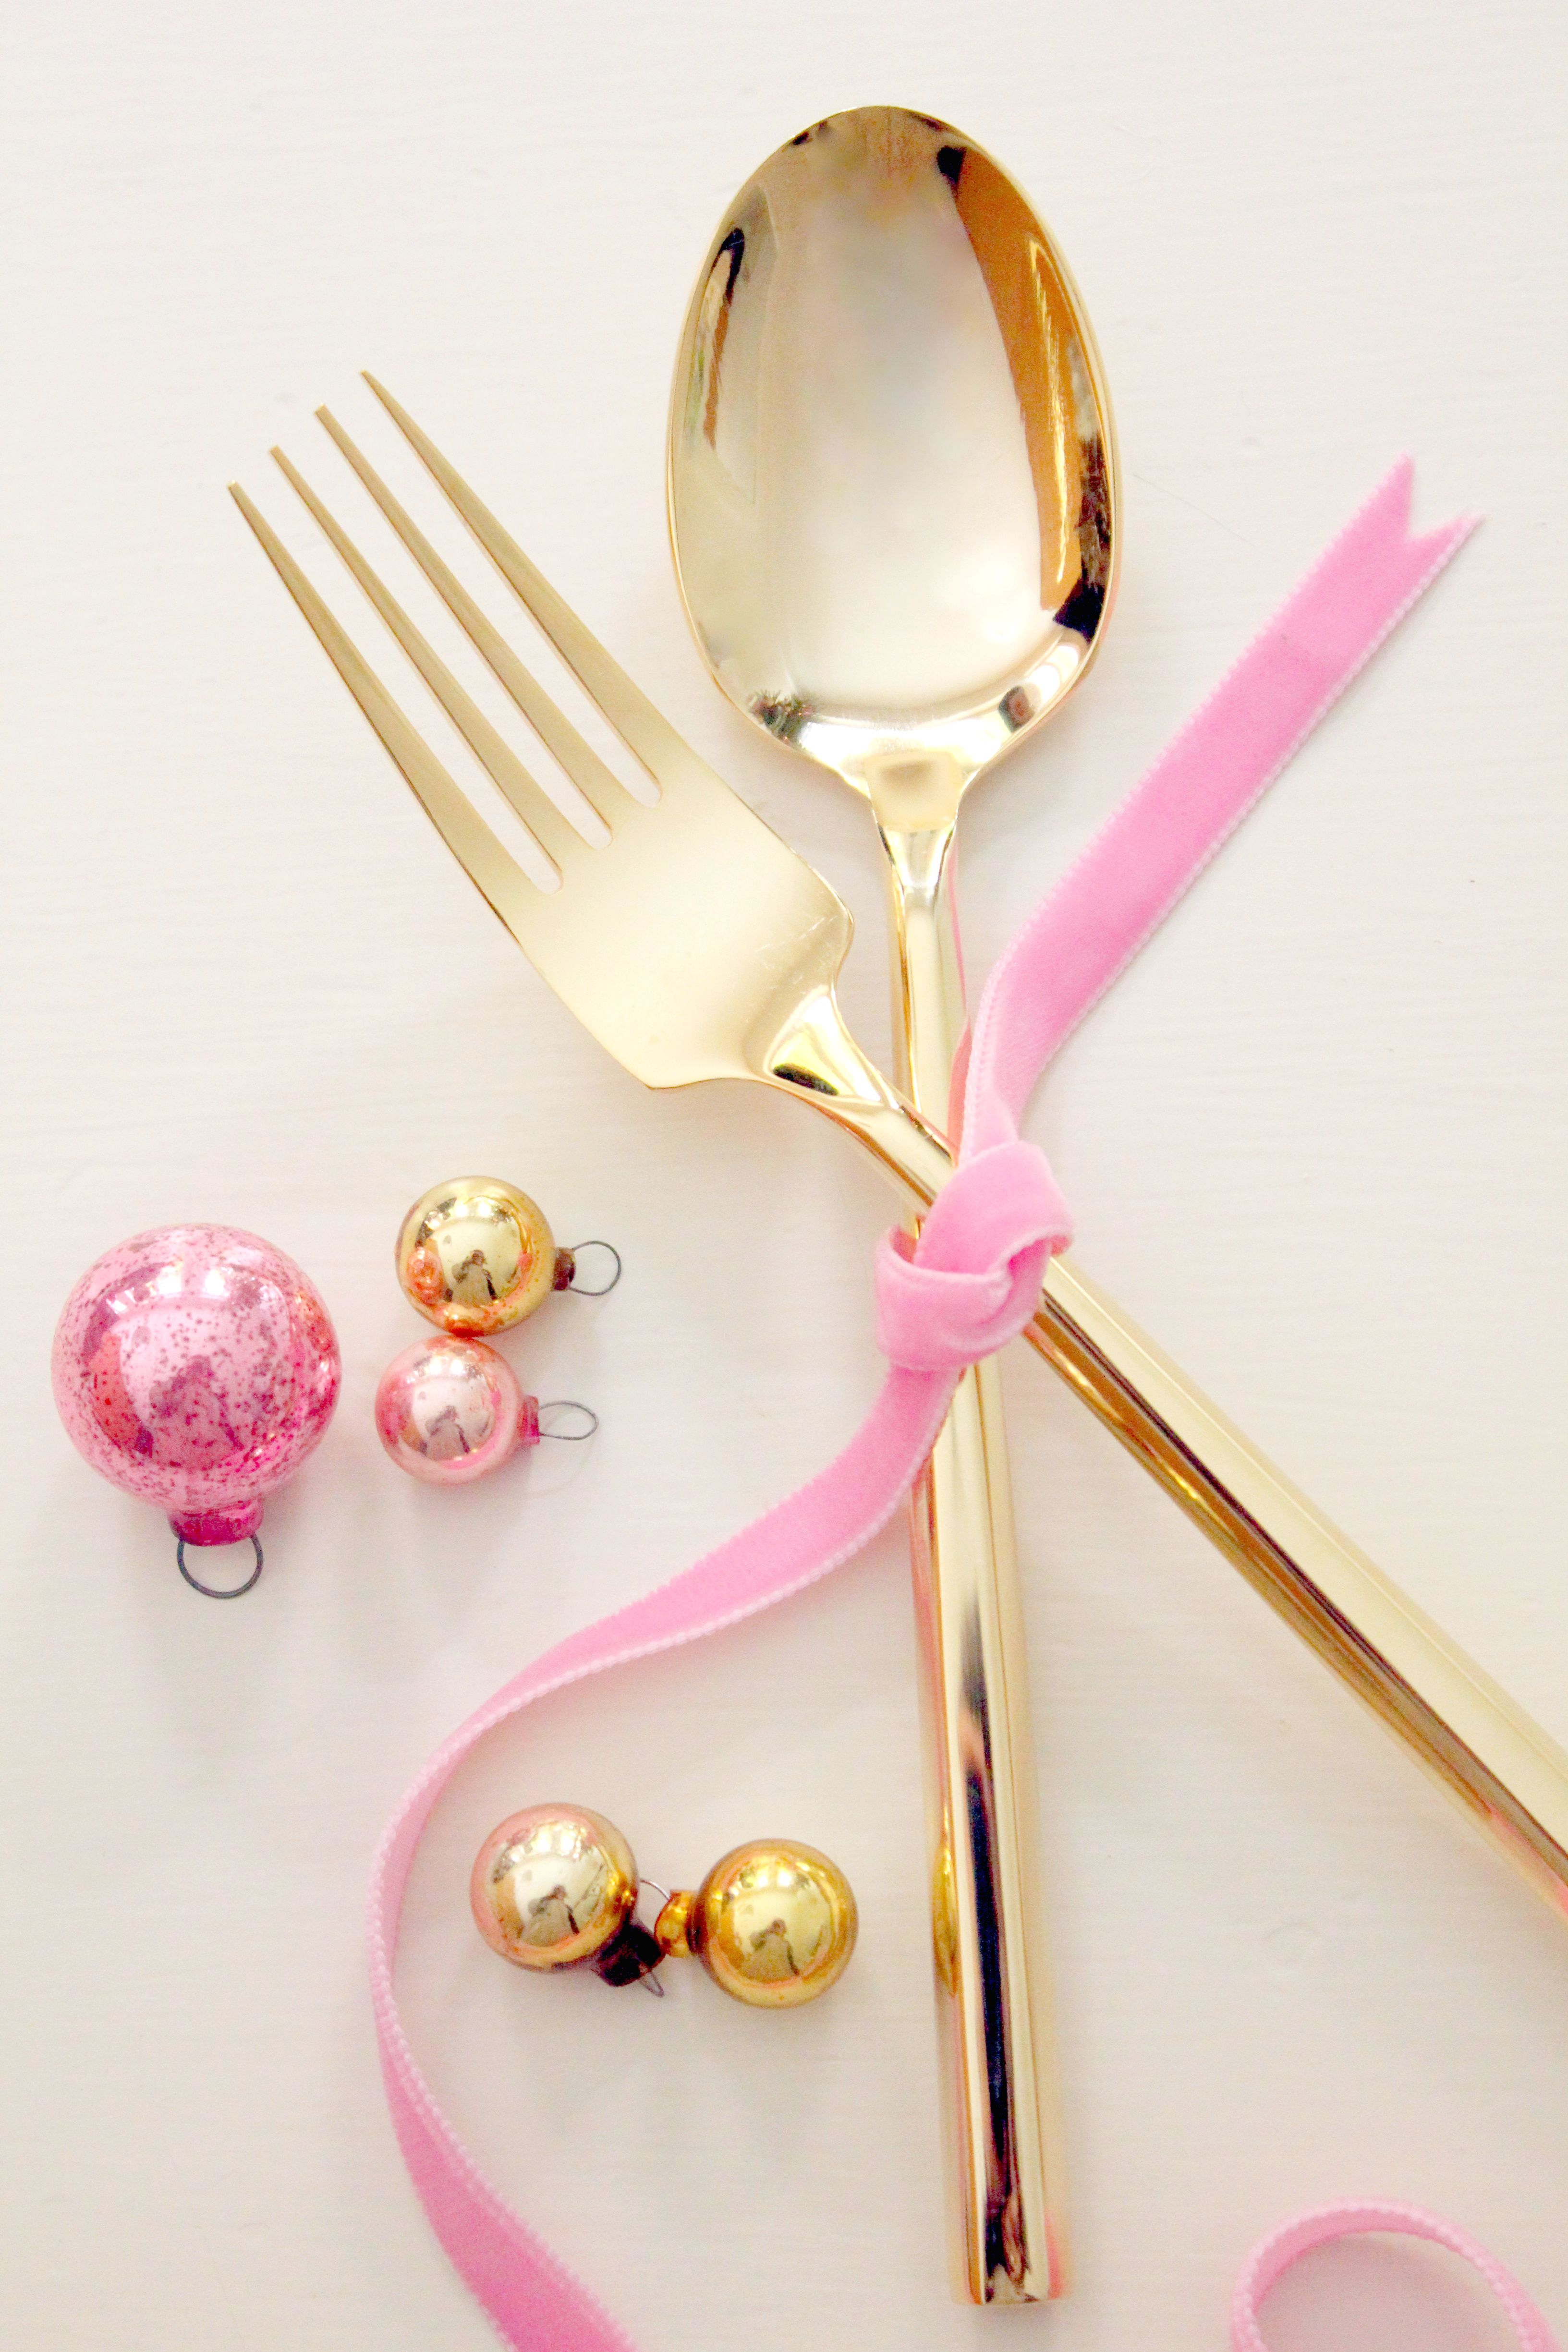 Our colours this Christmas are pink and gold. I'm experimenting with some pink velvet  ribbons for the dinner table...